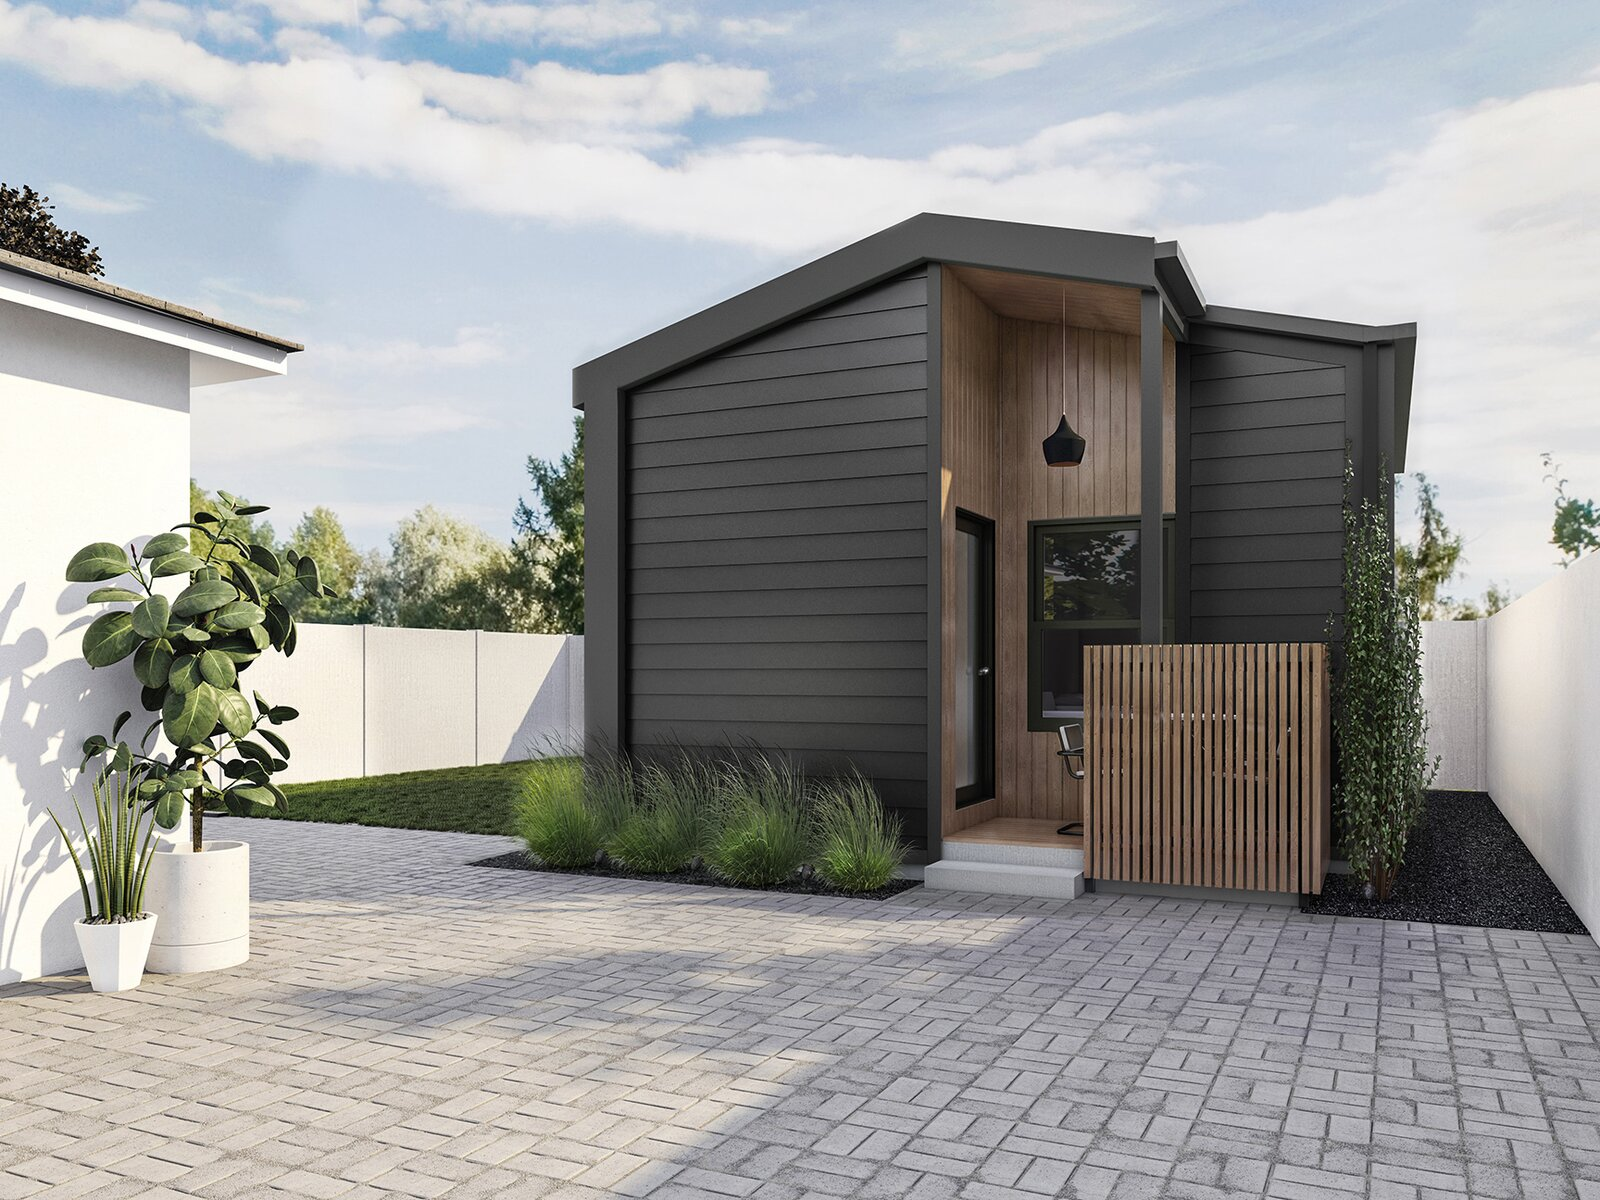 Exterior, Wood Siding Material, Saltbox RoofLine, and Tiny Home Building Type United Dwelling's free ADUs feature a full kitchen, laundry, and outdoor space.  Photo 5 of 5 in These 5 Companies Want to Build a Tiny House in Your Backyard for Free